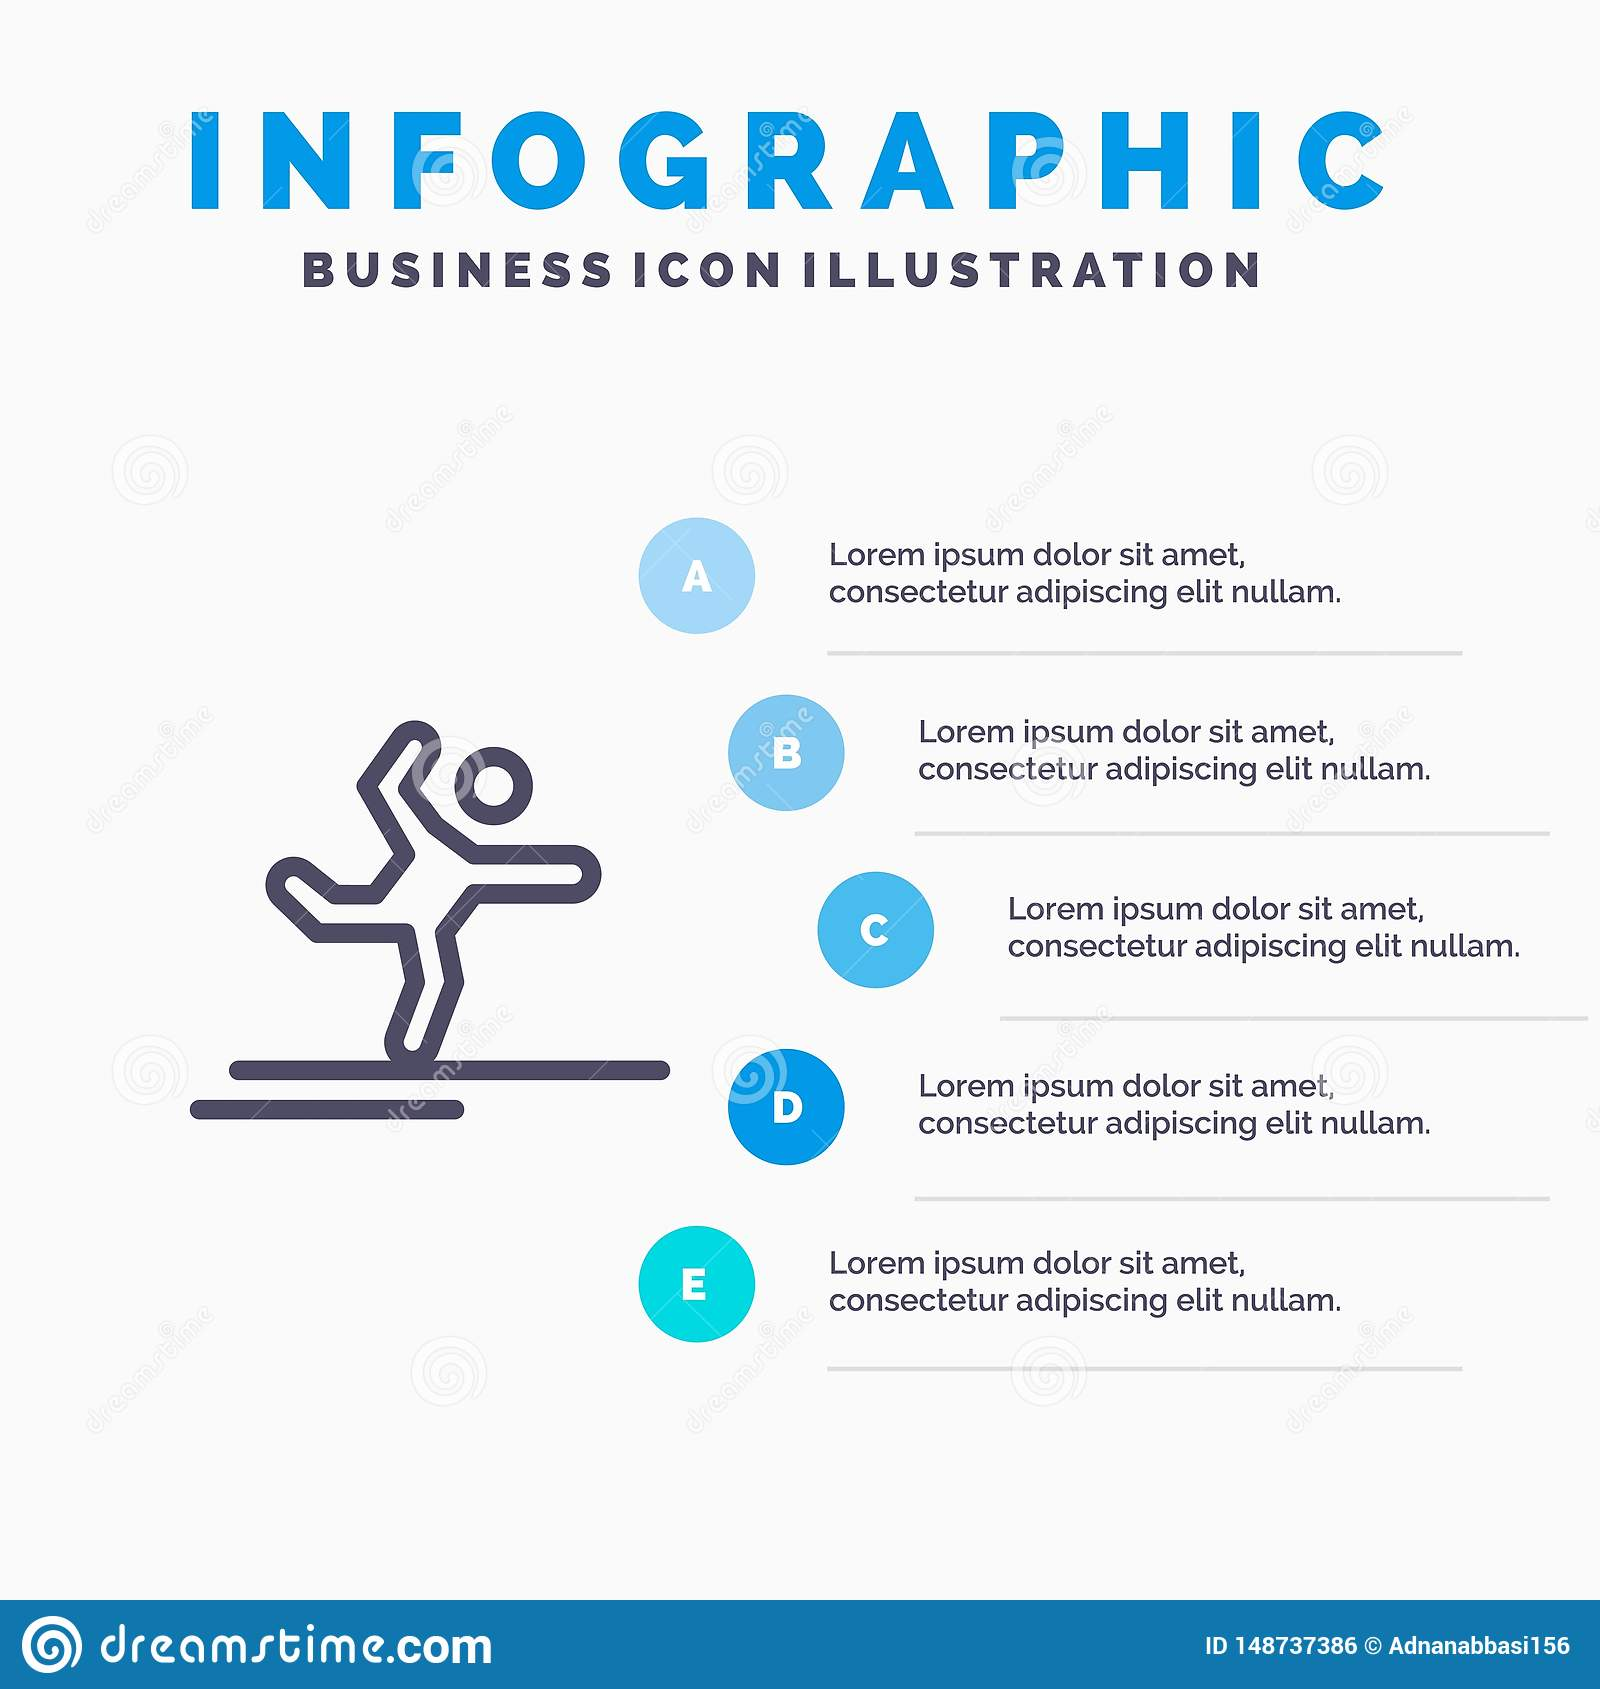 Athlete, Gymnastics, Performing, Stretching Line icon with 5 steps presentation infographics Background